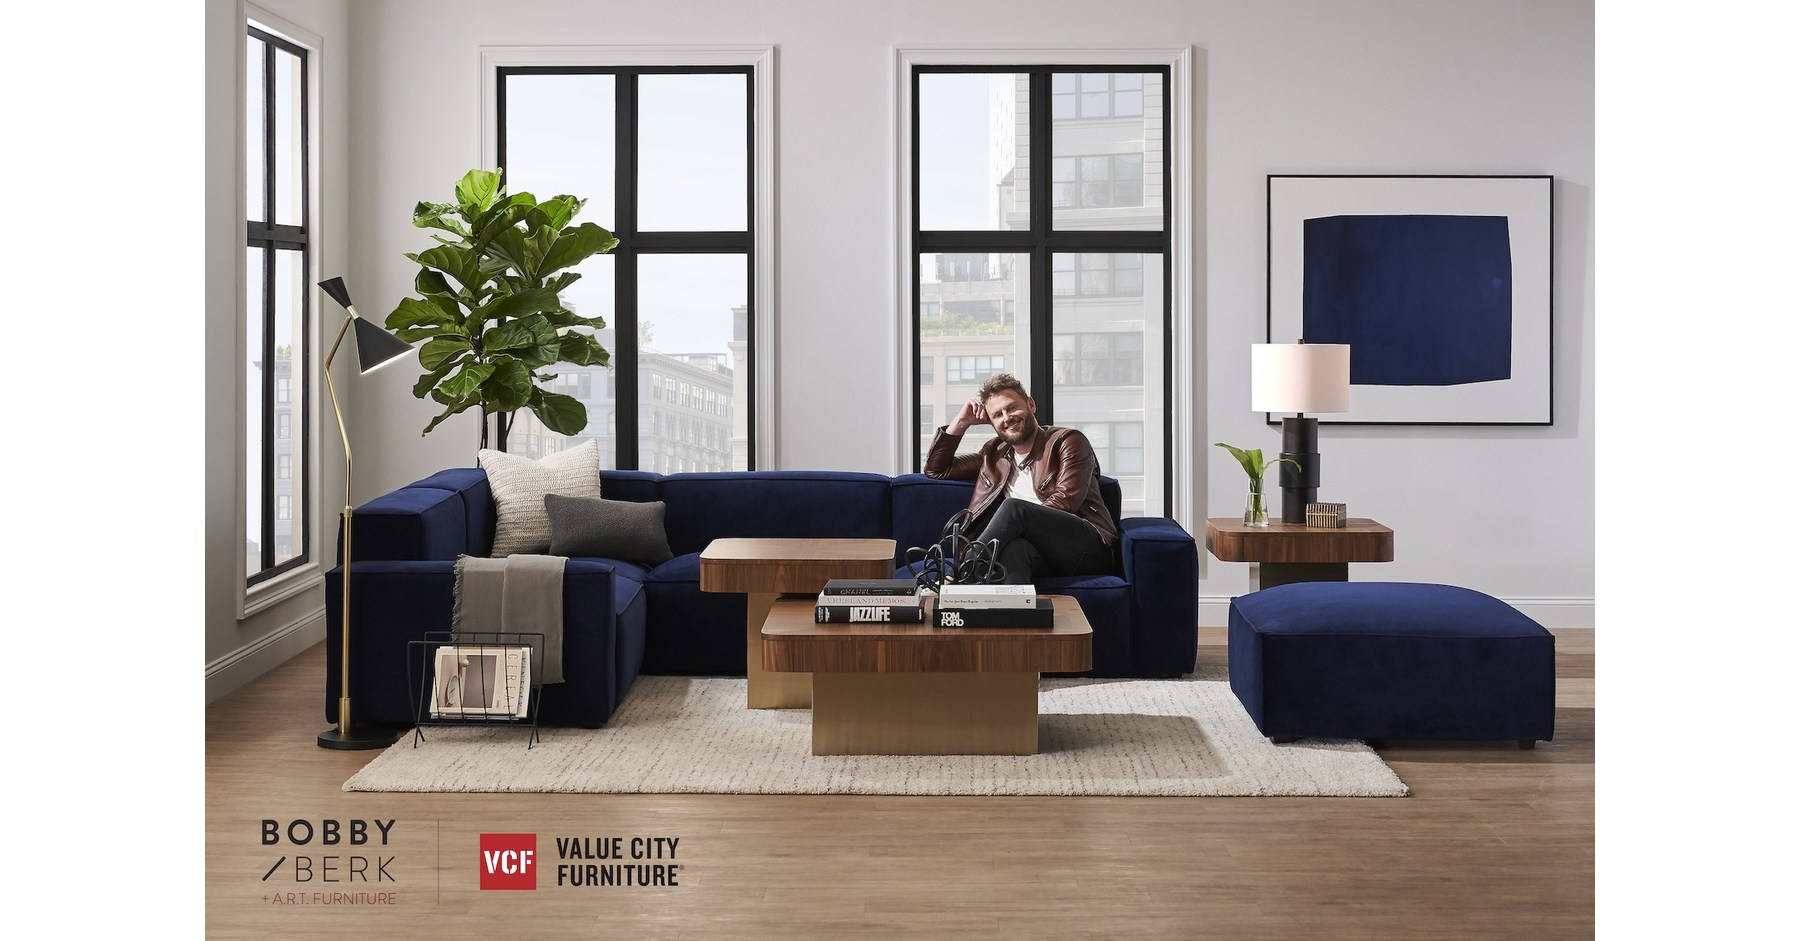 Value City Furniture, American Signature Furniture announces Bobby